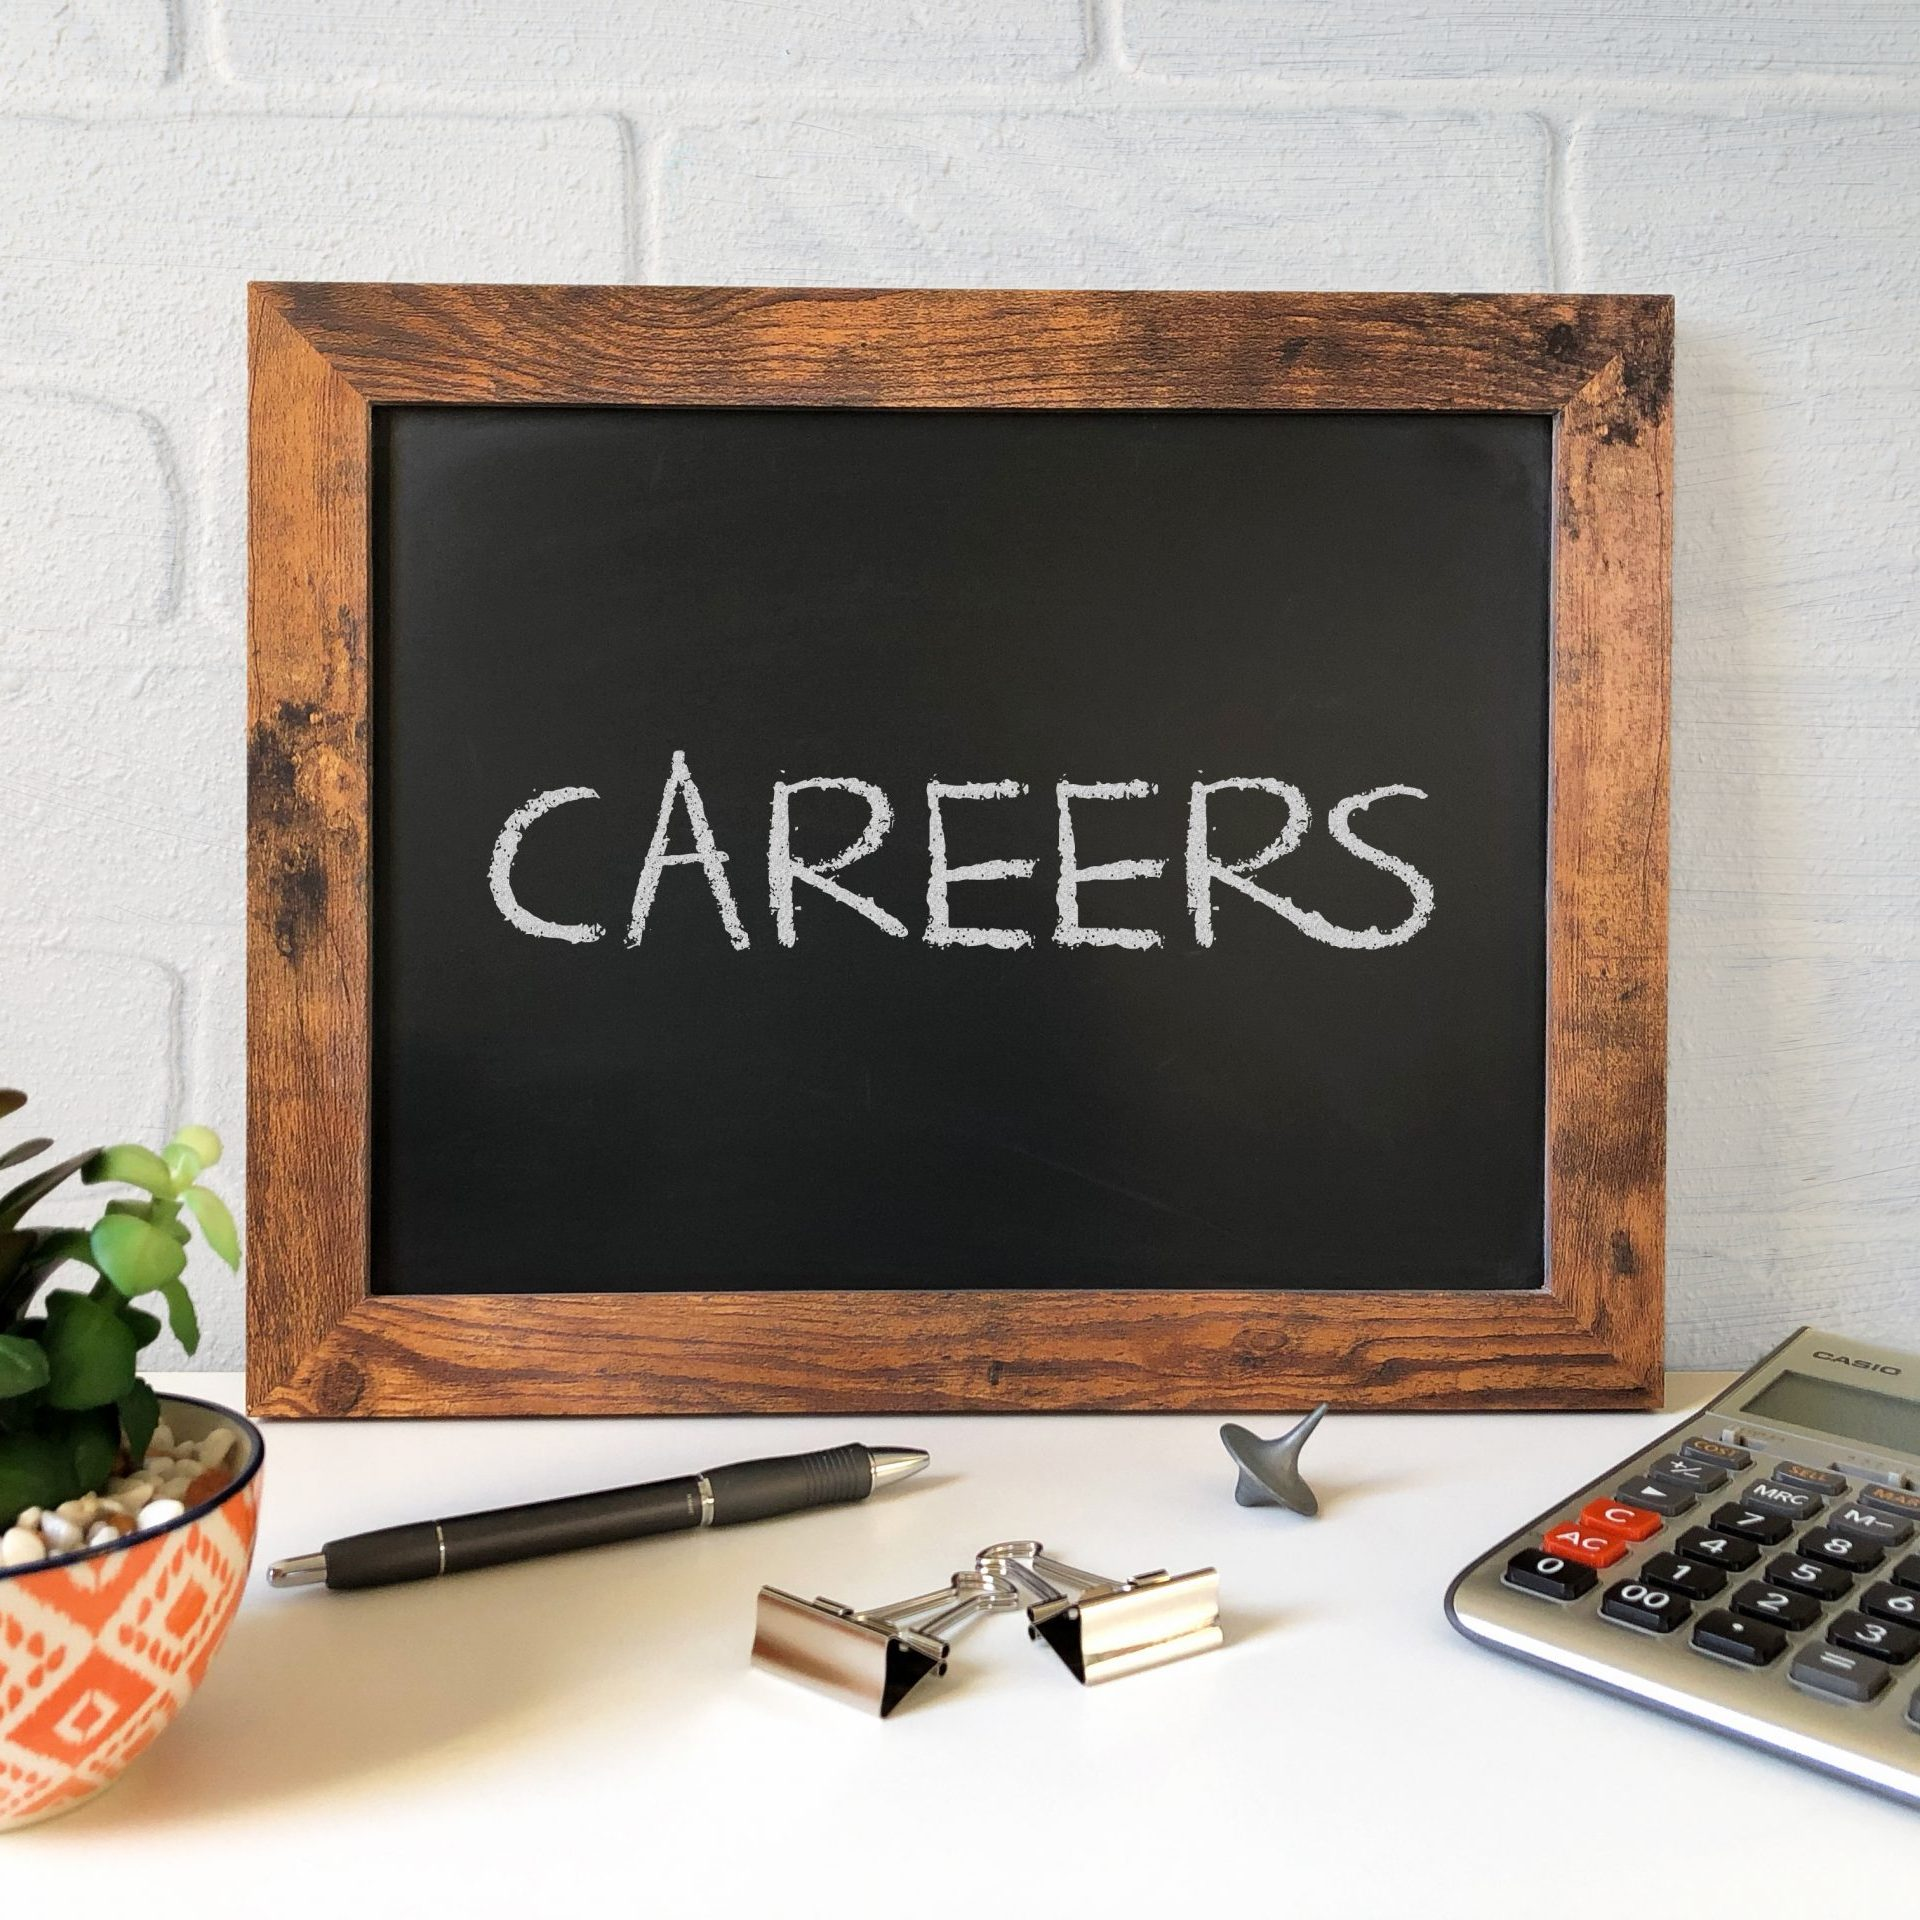 Secrets on how to balance work and career